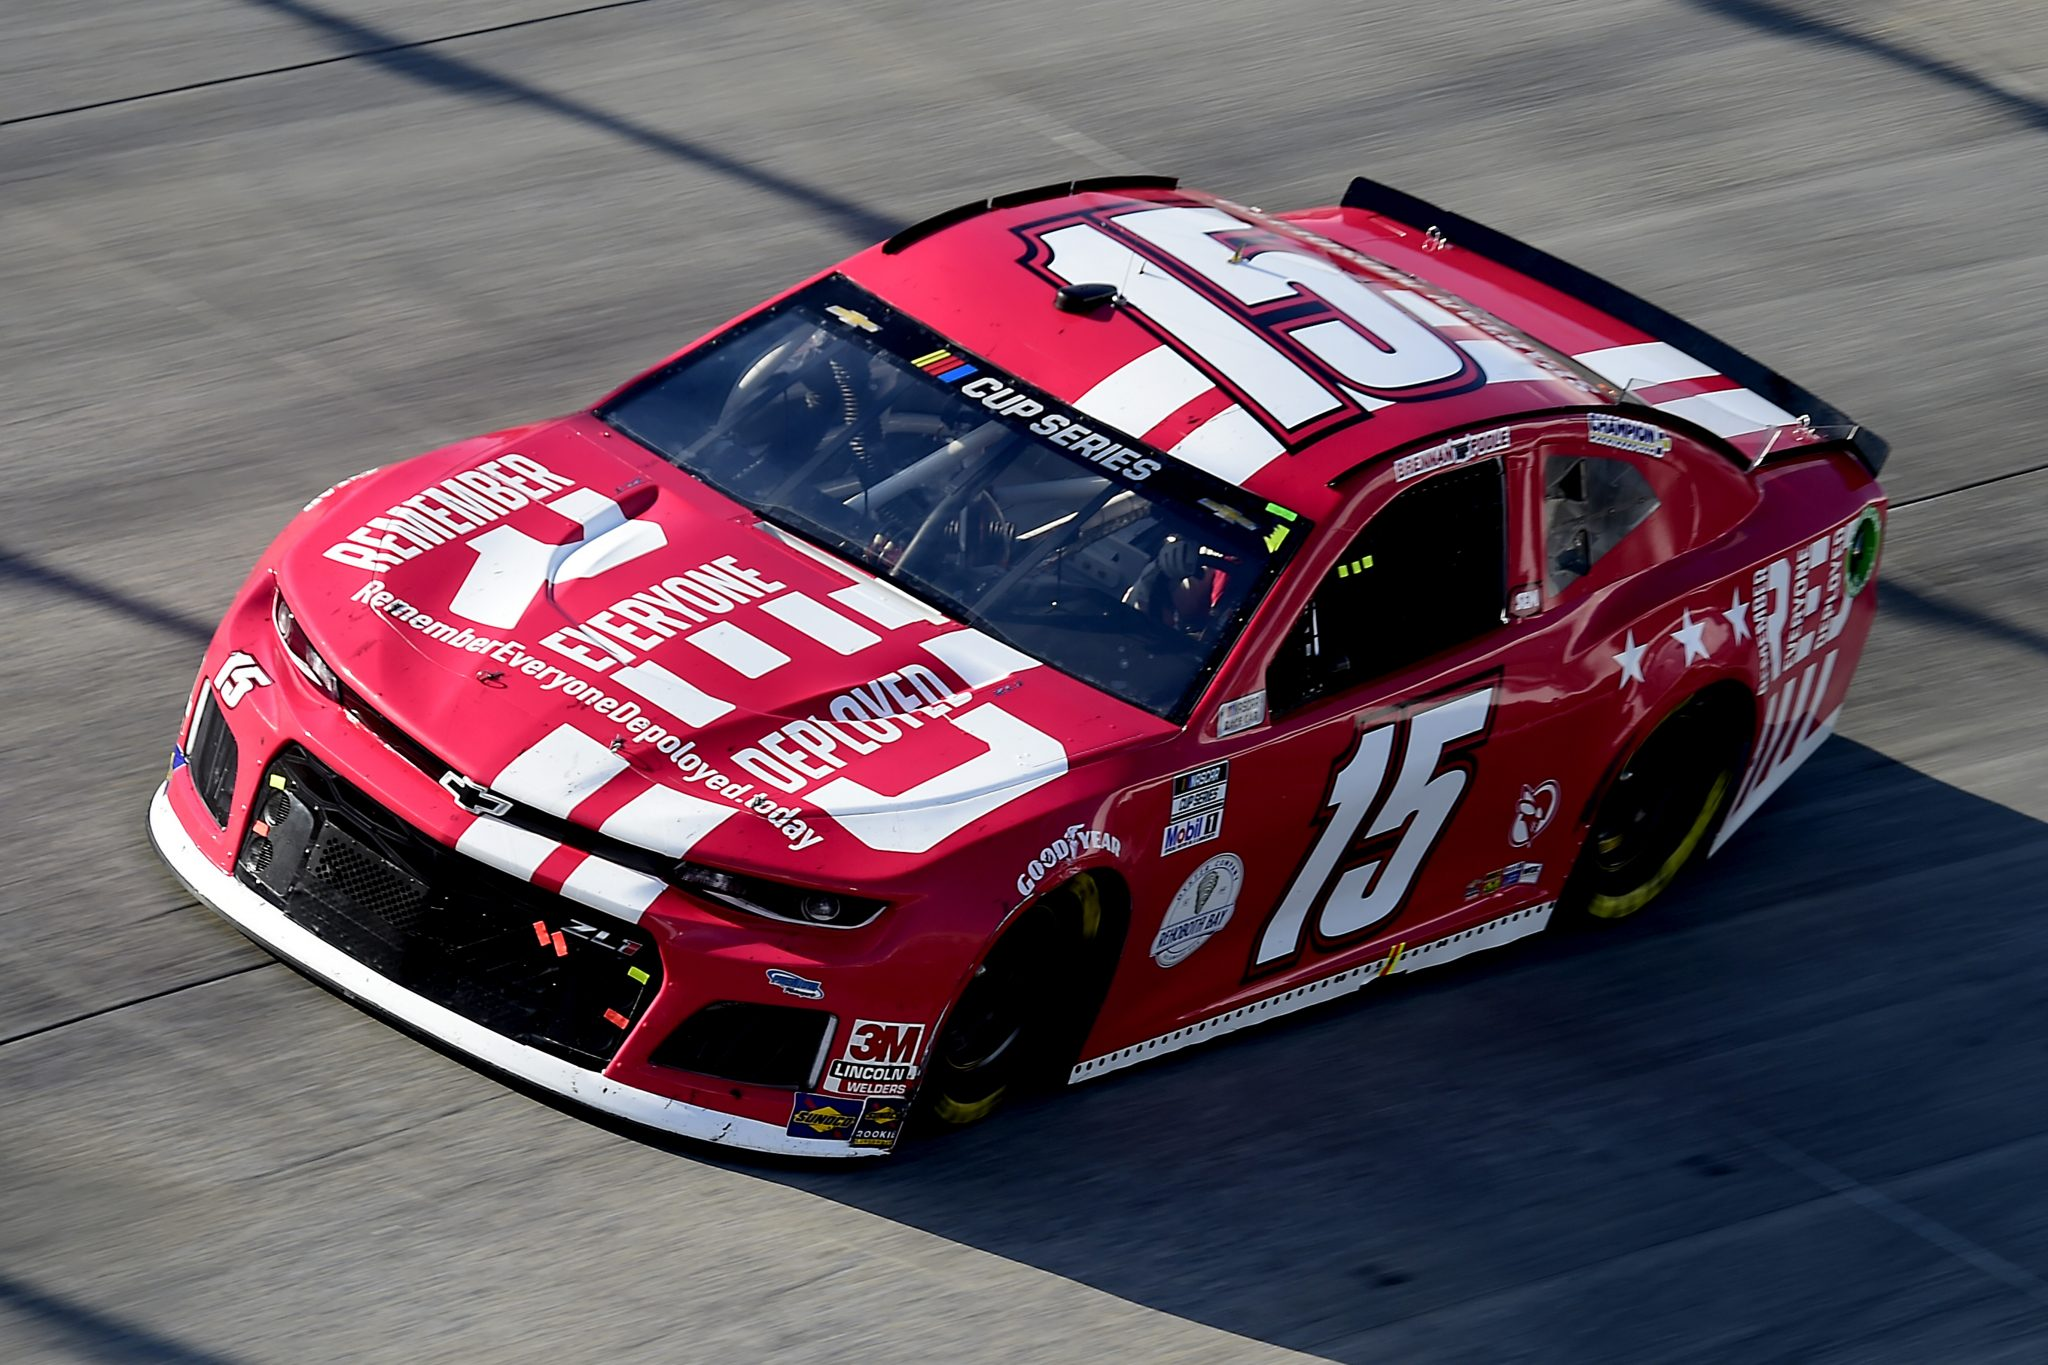 DOVER, DELAWARE - AUGUST 23: Brennan Poole, driver of the #15 RememberEveryoneDeployed. Today Chevrolet, drives during the NASCAR Cup Series Drydene 311 at Dover International Speedway on August 23, 2020 in Dover, Delaware. (Photo by Jared C. Tilton/Getty Images) | Getty Images